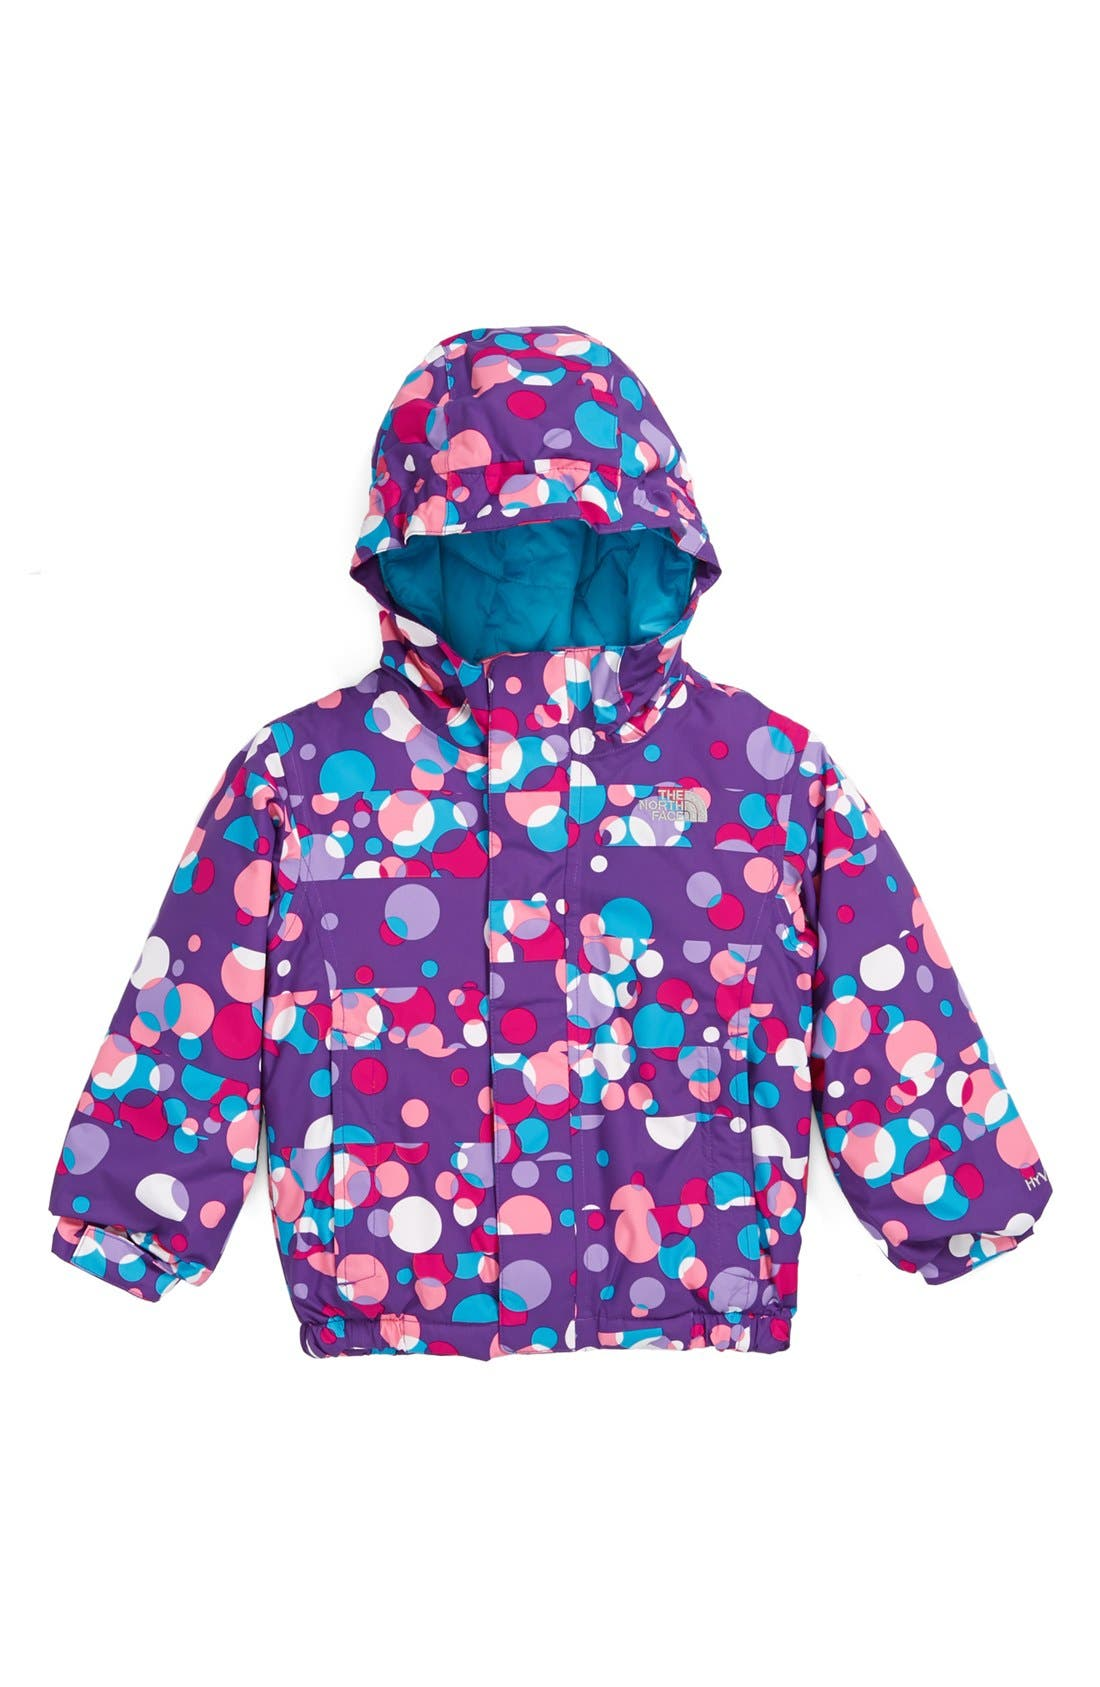 Main Image - The North Face 'Chimmy' Insulated Jacket (Toddler Girls)